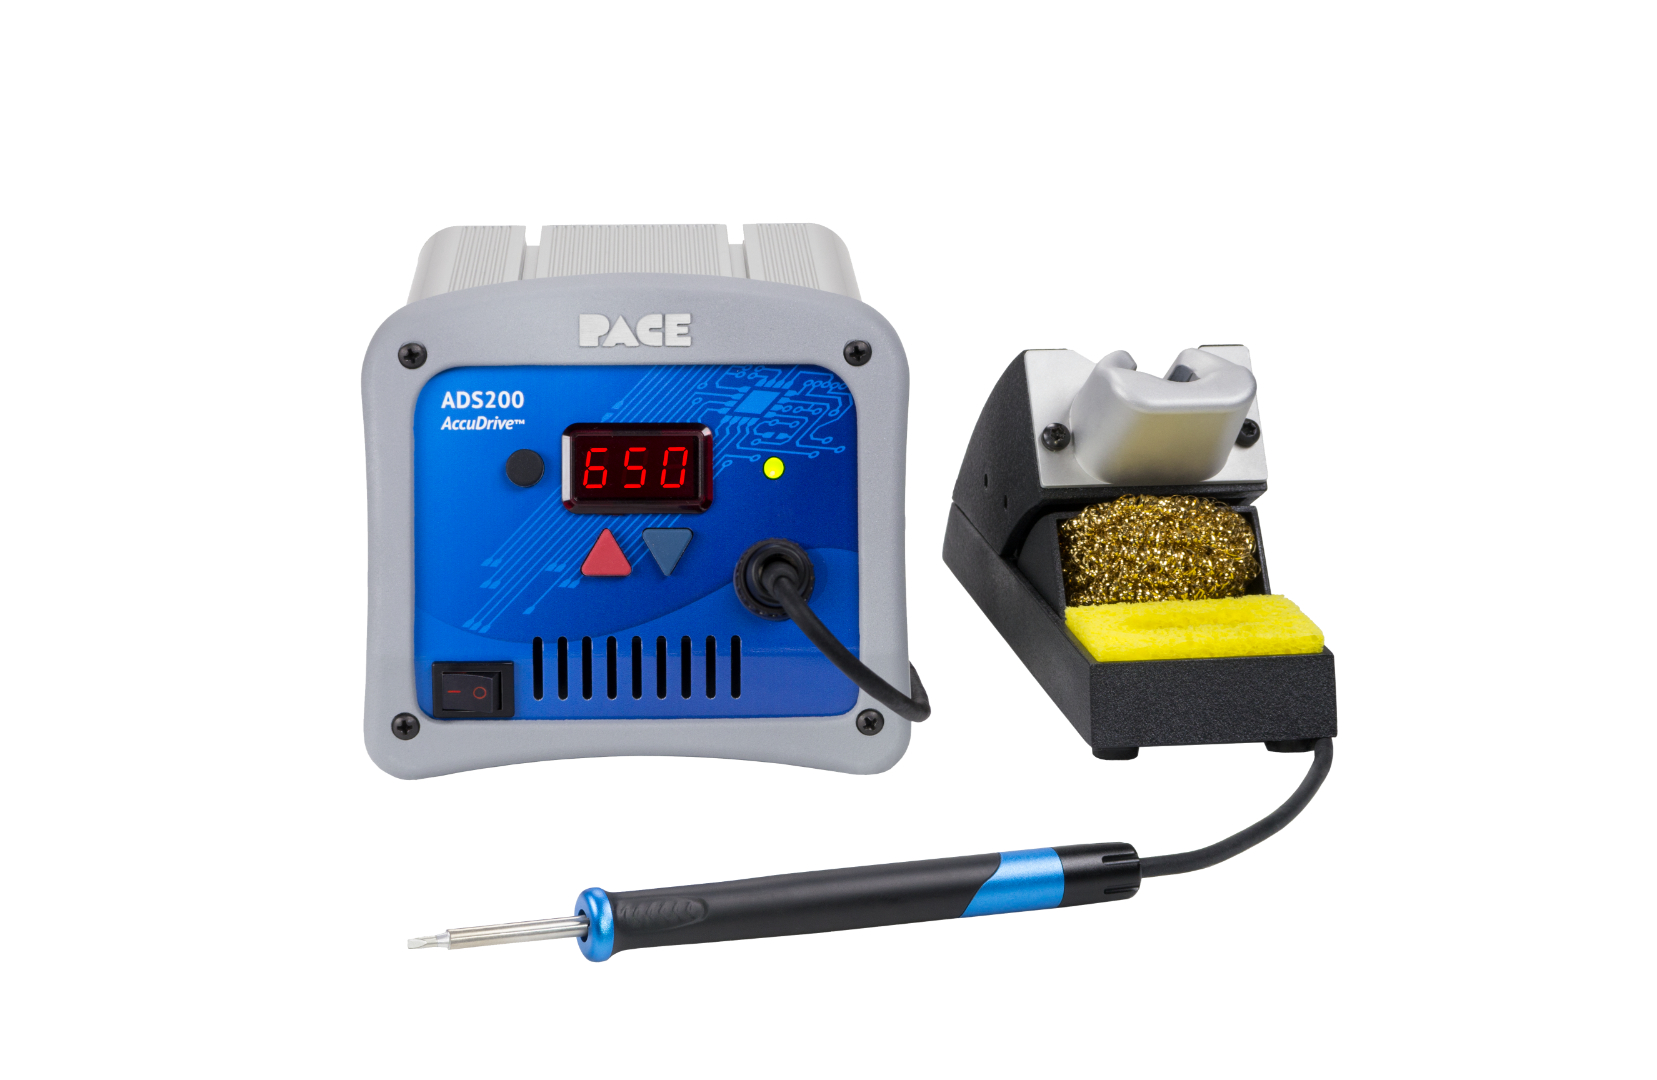 ADS200 AccuDrive® Production Soldering Station with TD-200 Tip-Heater Cartridge Iron, 230v